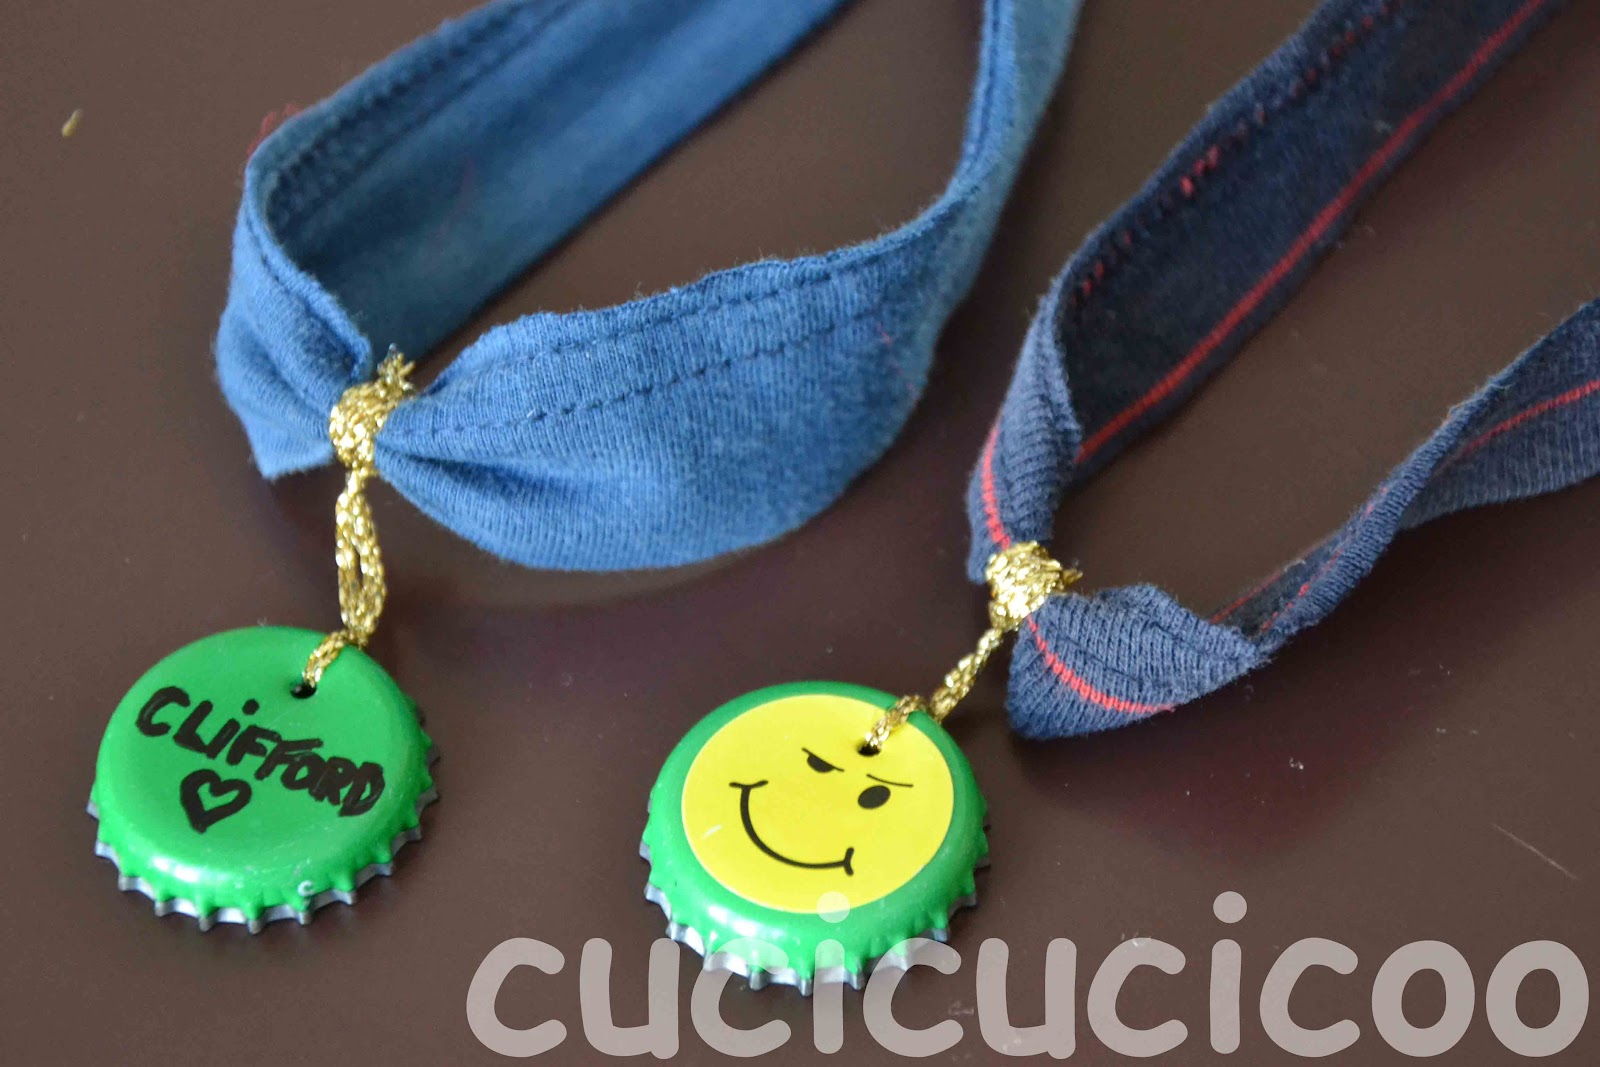 Upcycled bottle cap dog tags and T-shirt sleeve collars!